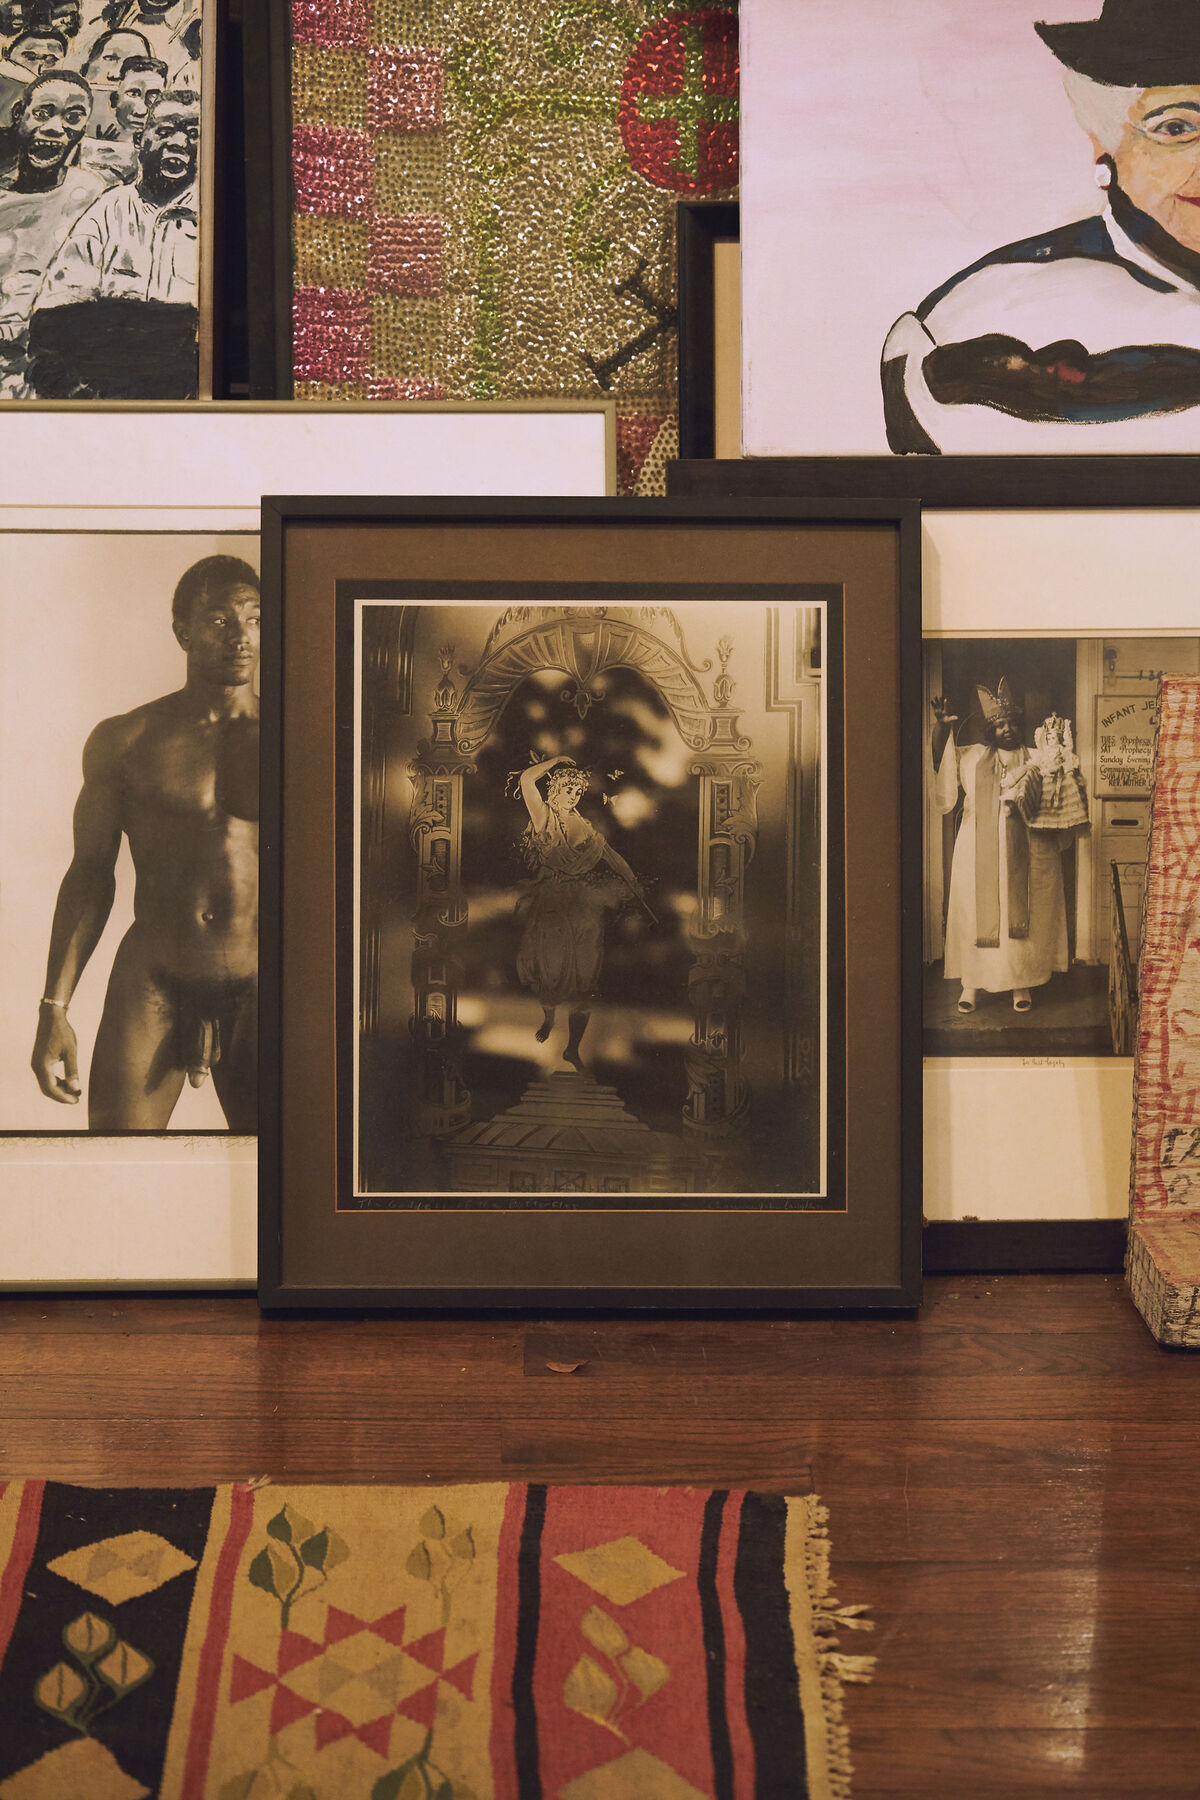 A patchwork of artists from New Orleans holds court along the dining room wall: On the left is a portrait of a nude athlete by George Dureau; at center is a photograph by Clarence John Laughlin, one of the early Surrealist photographers in America; and on the right is a work by documentary photographer Michael P. Smith. Photo by Michael Adno for Artsy.